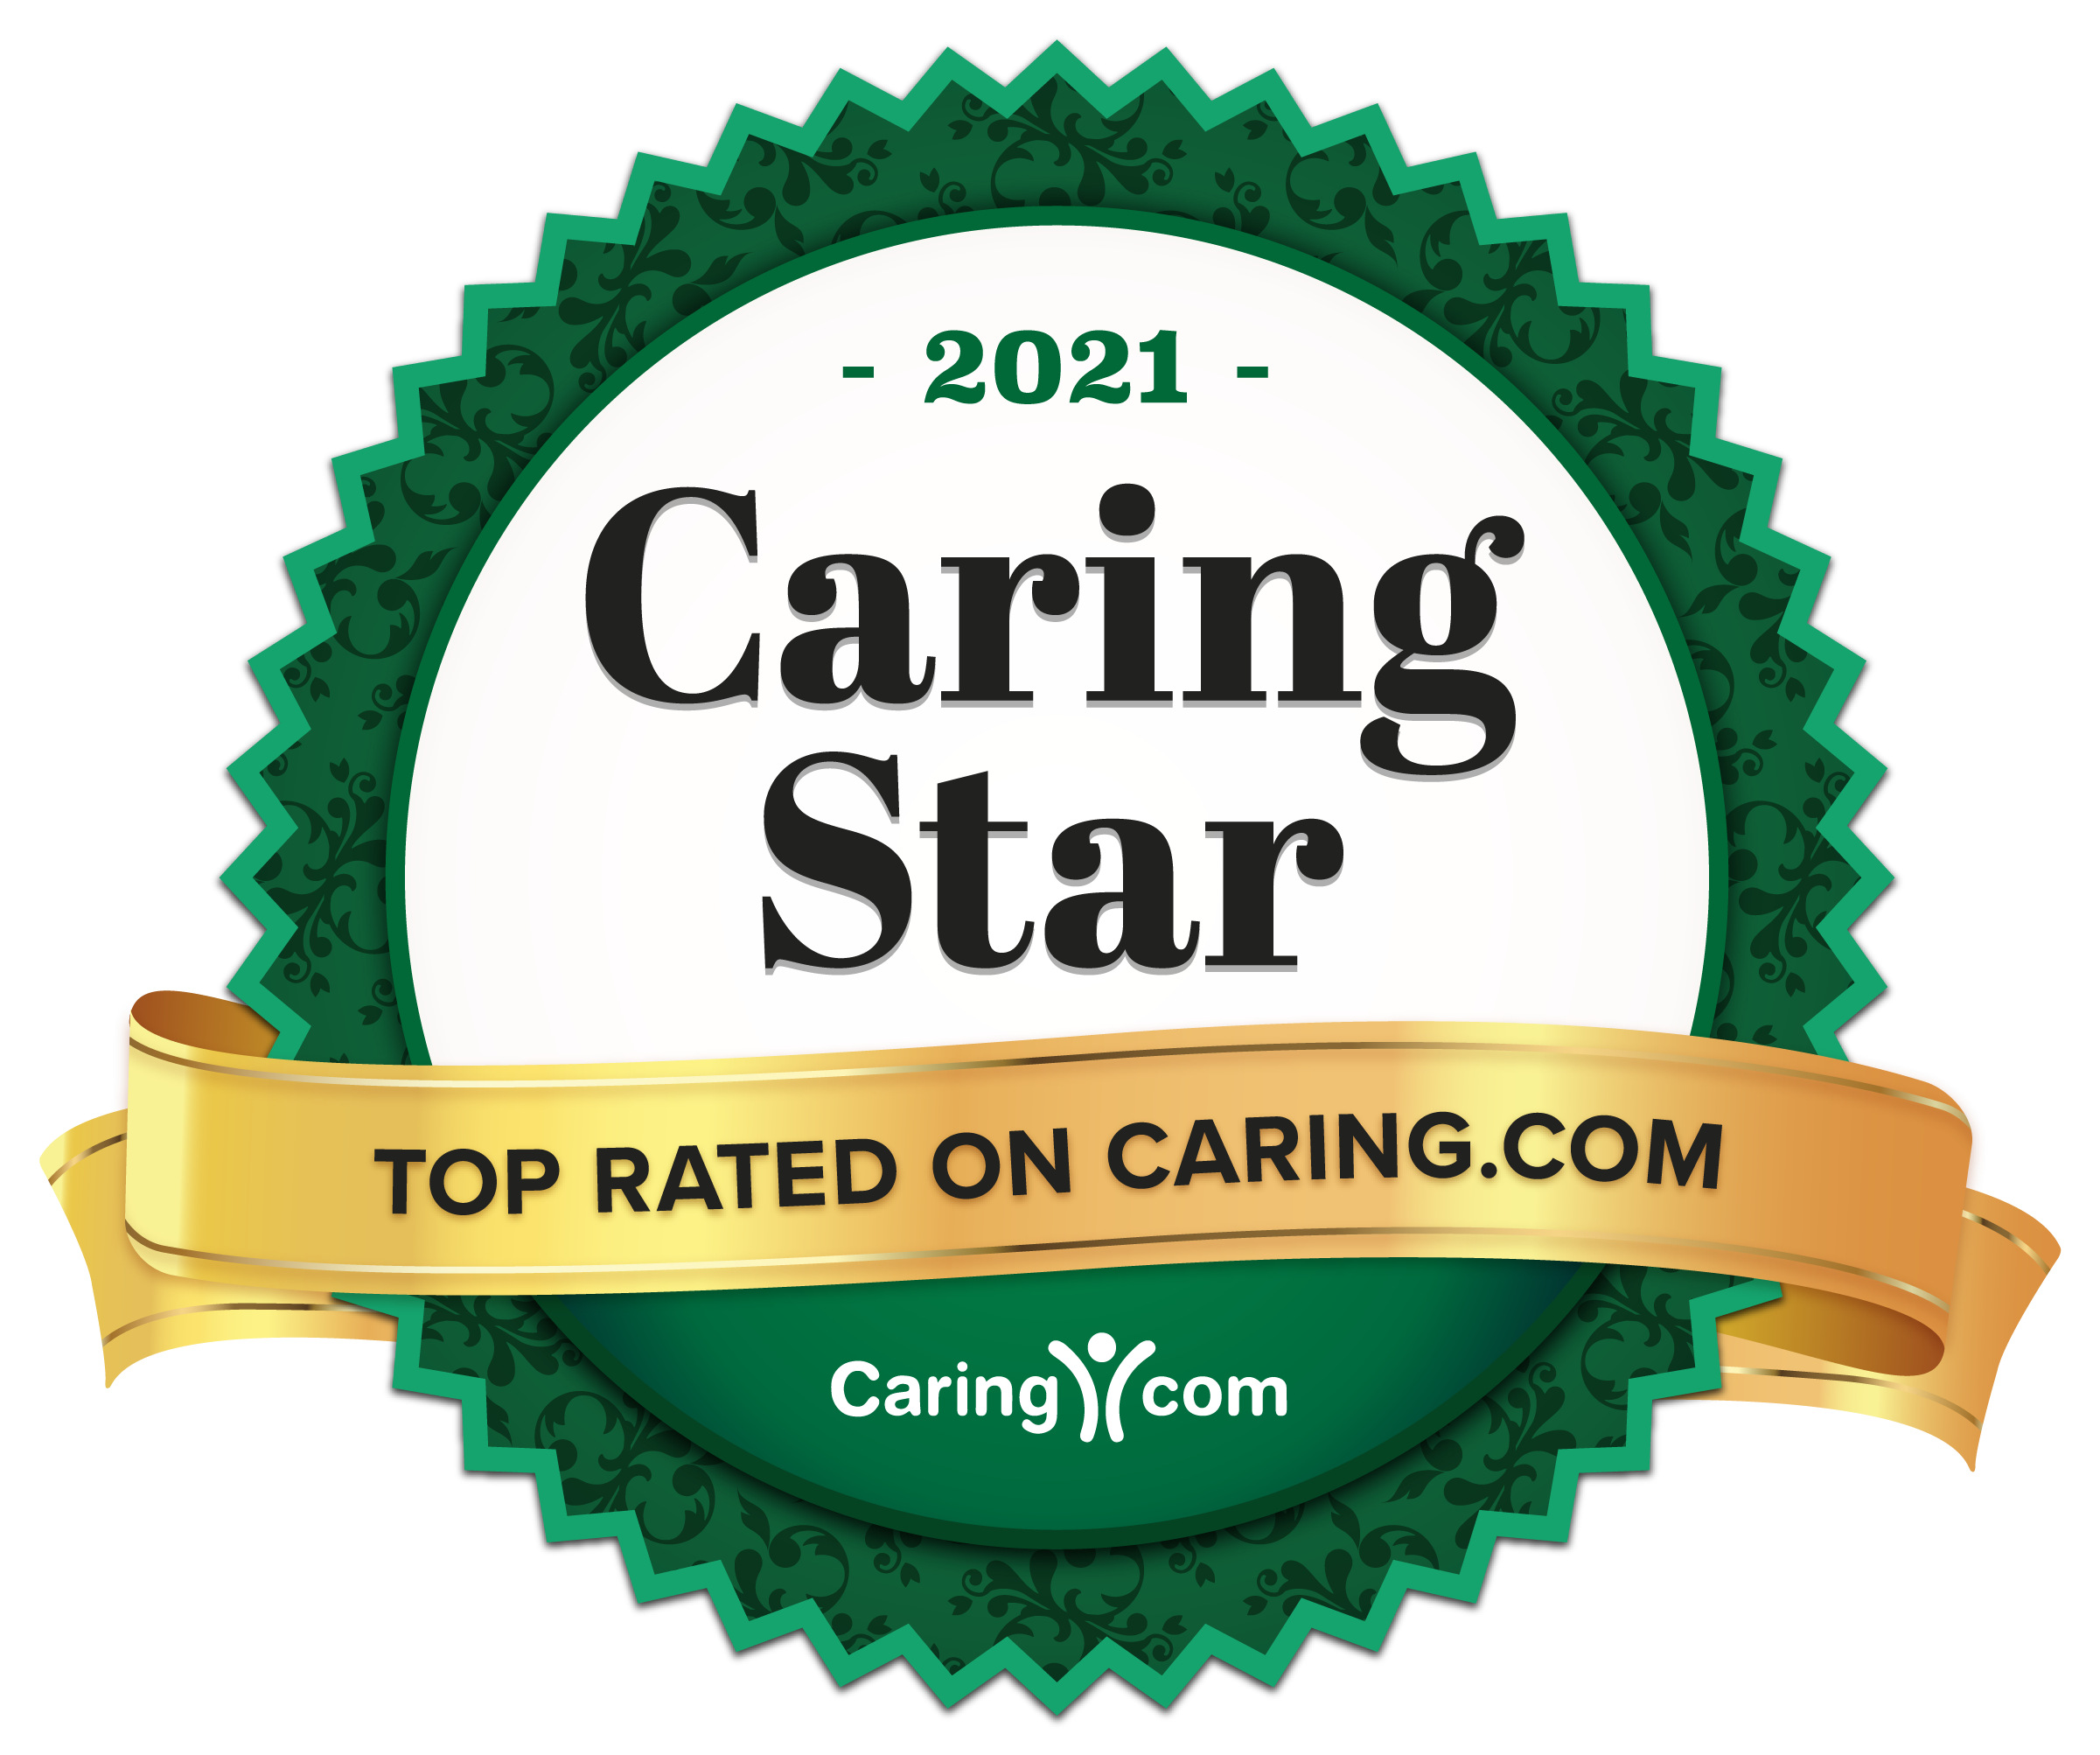 Sakura Gardens of Los Angeles is a Caring.com Caring Star Community for 2021!